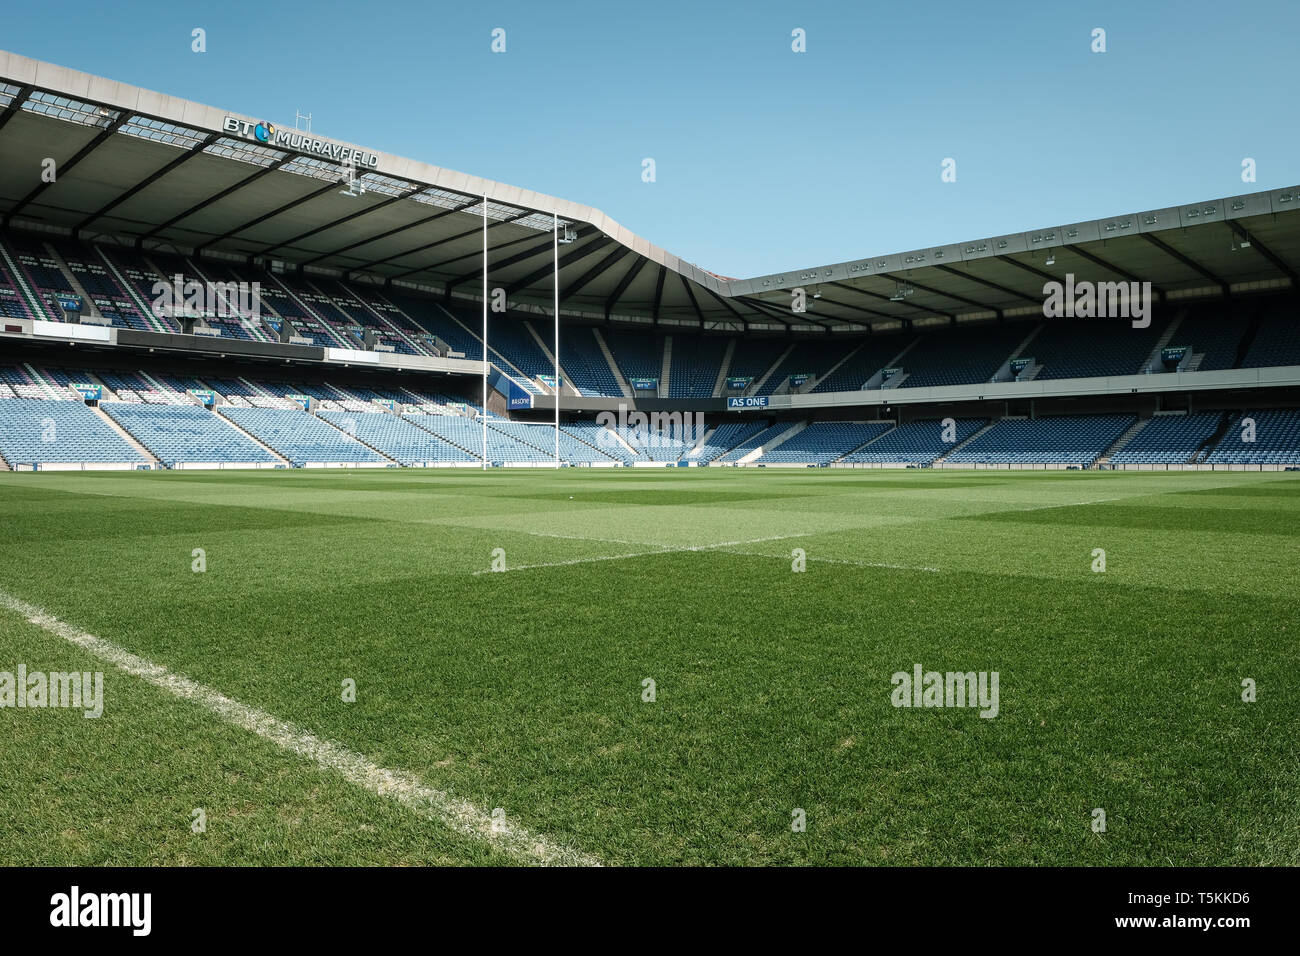 Murrayfield rugby stadium showing the north end stands and goalpost whilst empty on a sunny day, Edinburgh, East Lothian, Scotland - Stock Image